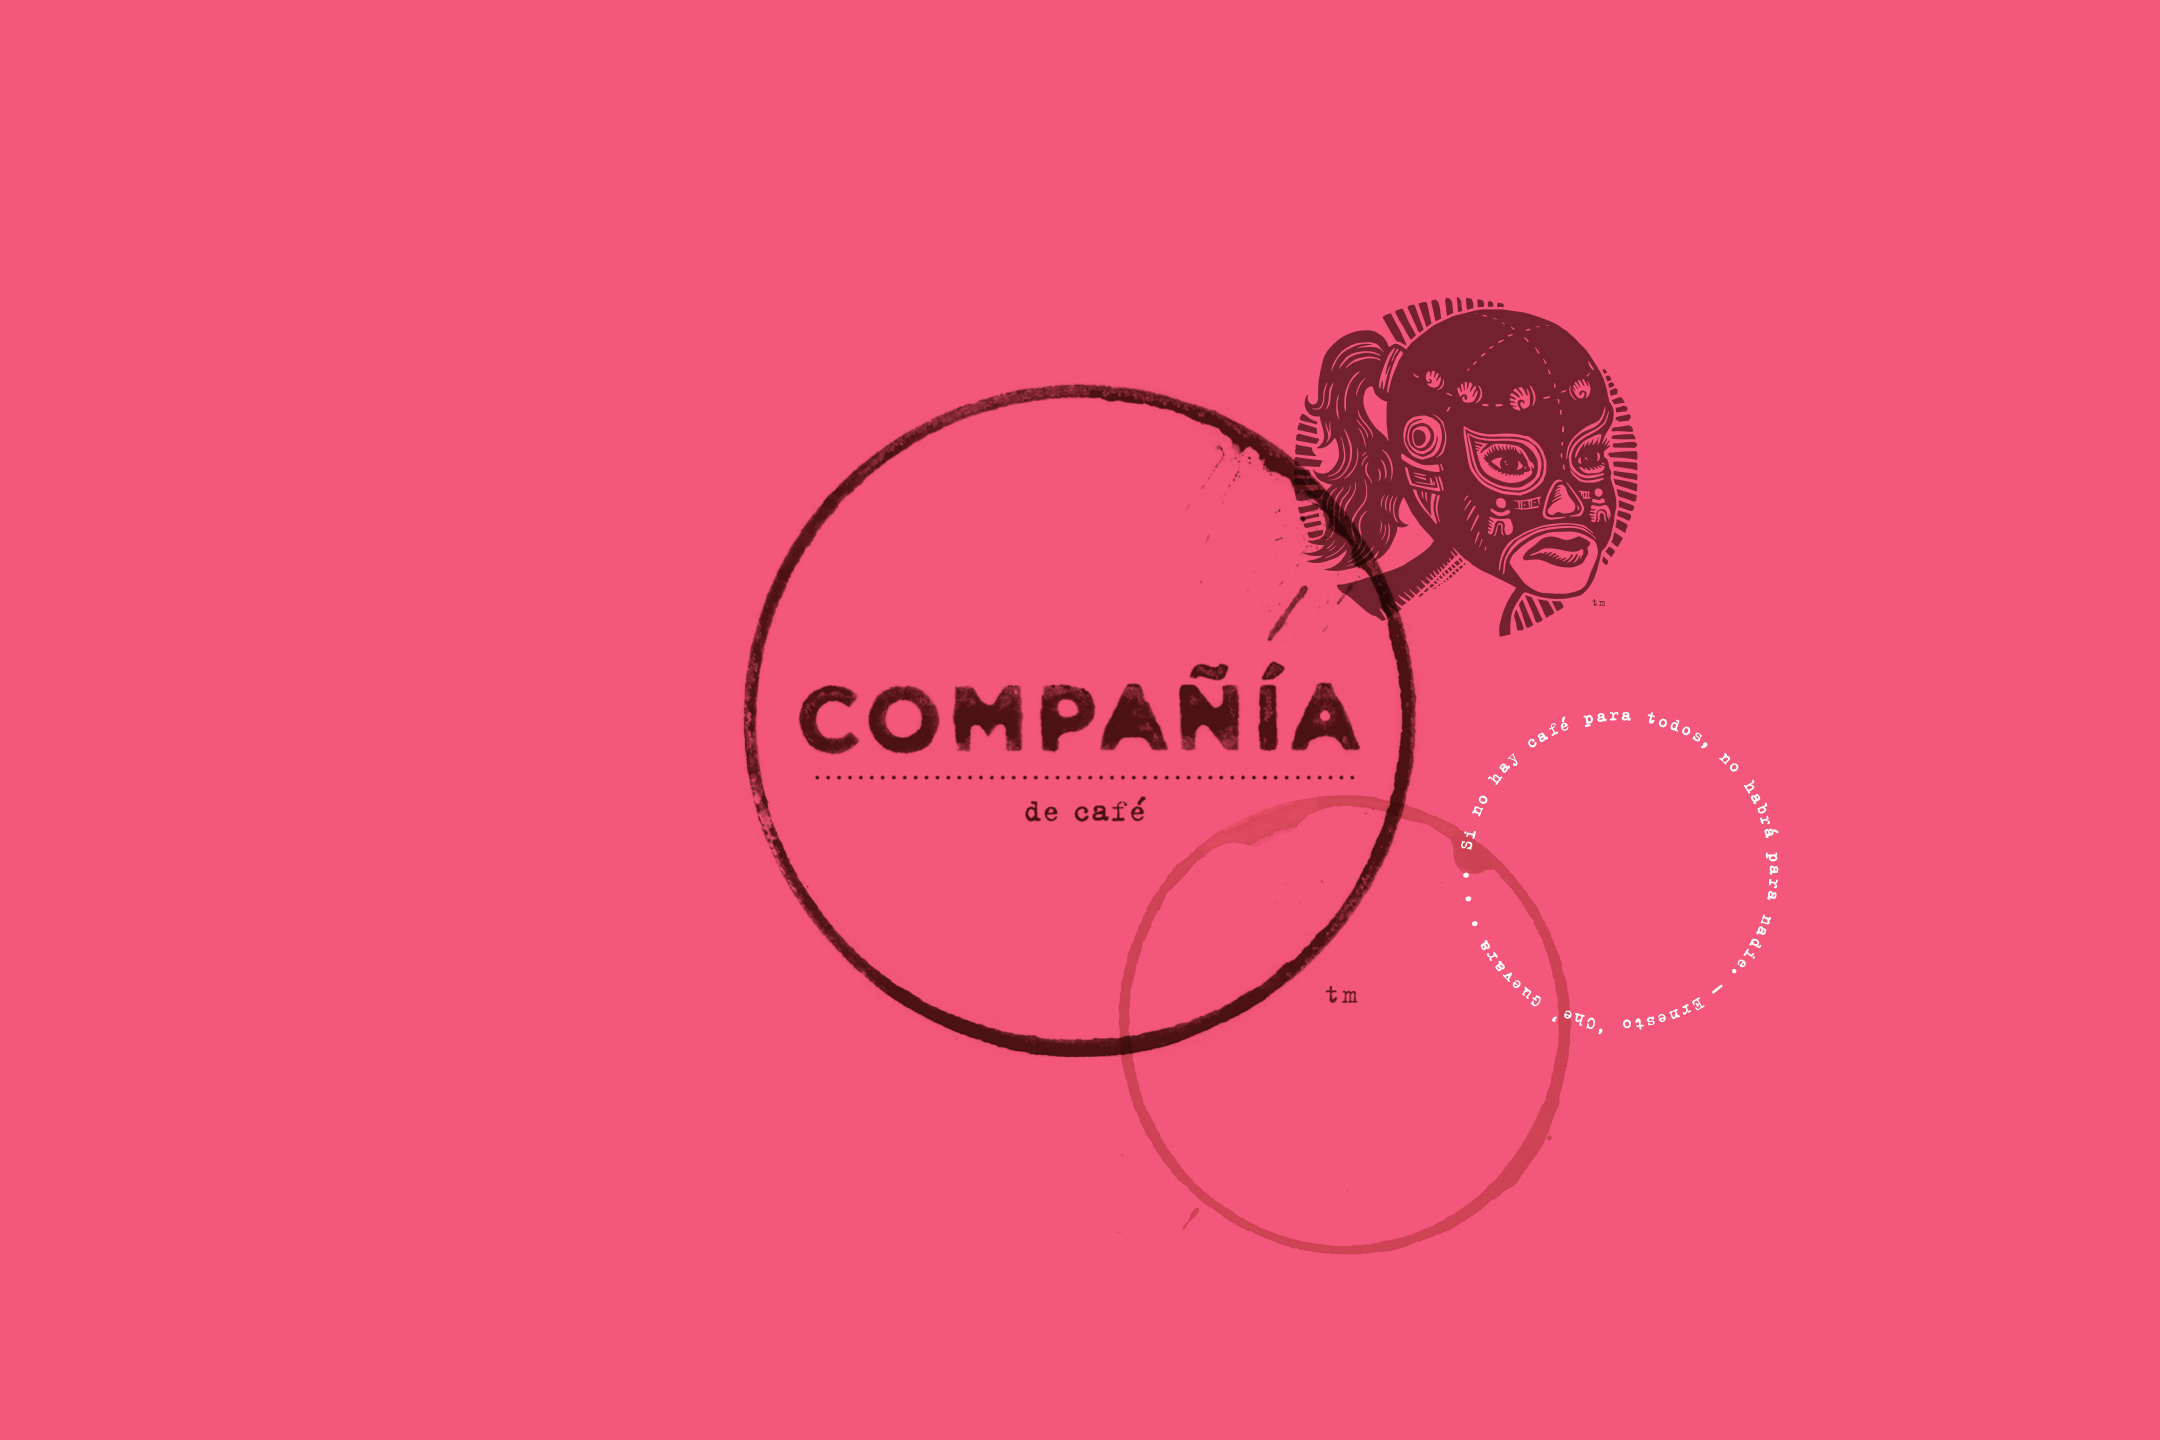 Compania-Chapter-Divider.jpg